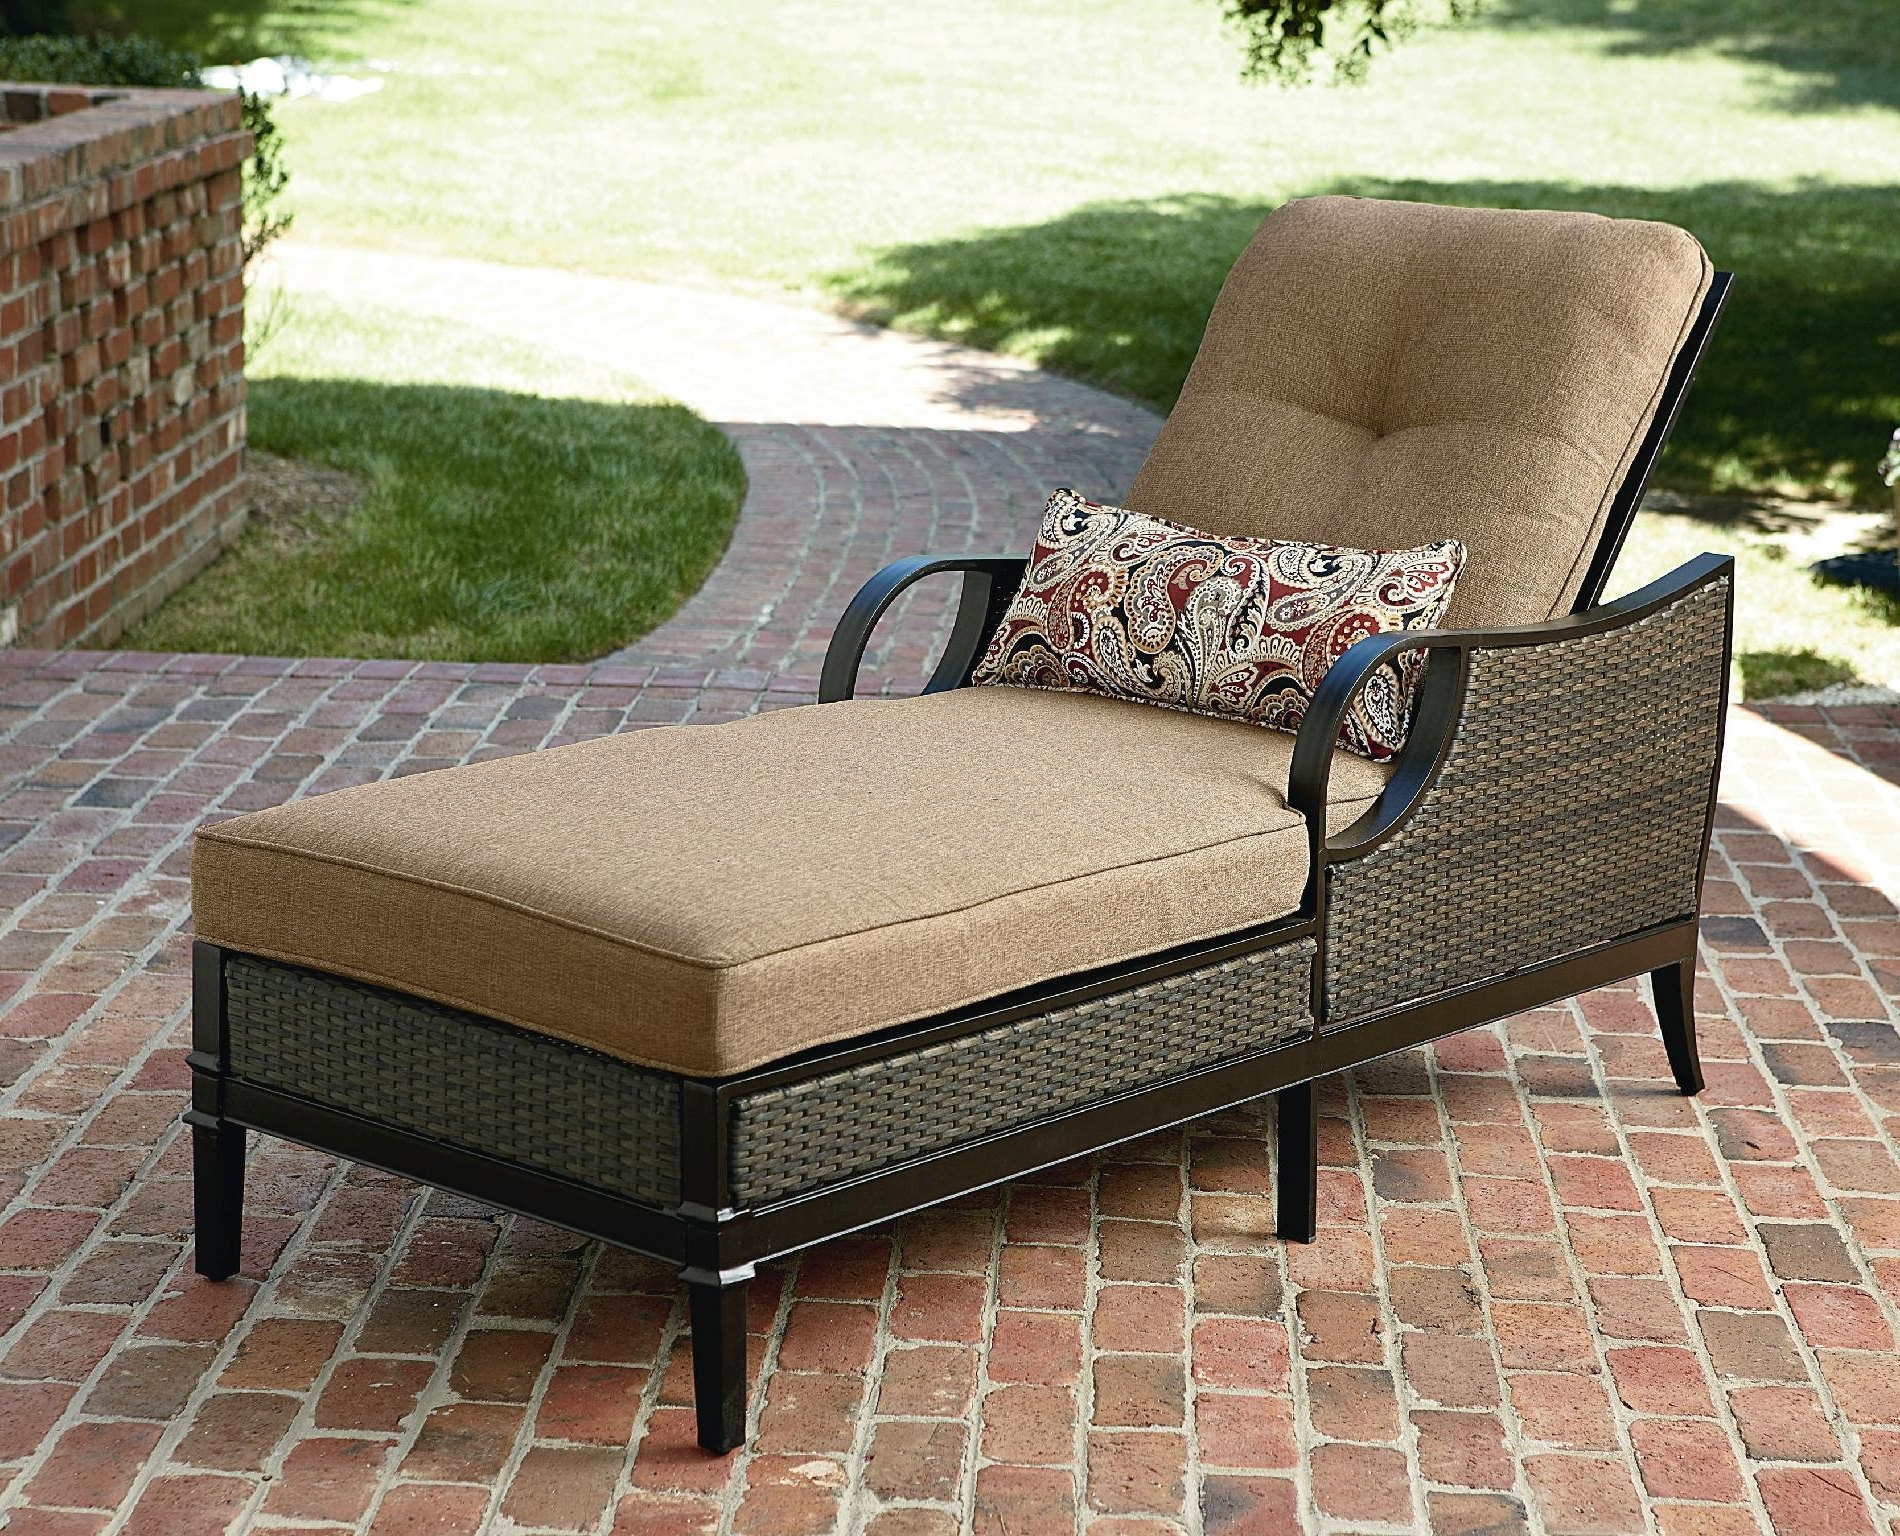 Patio Furniture Chaise Lounges With Regard To Most Recently Released Patio Furniture Chaise Lounge Chairs • Lounge Chairs Ideas (View 2 of 15)